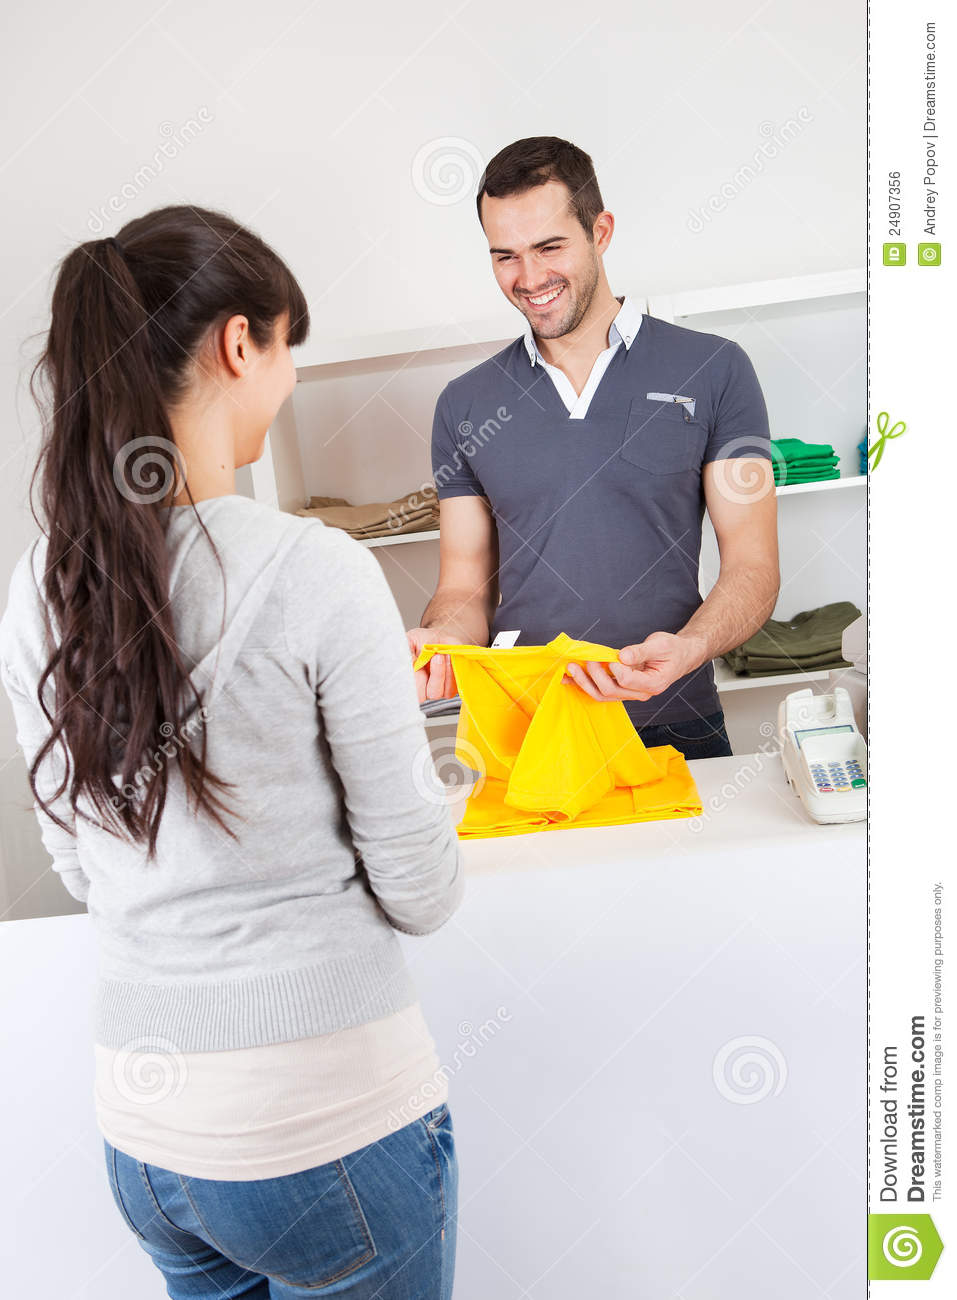 Buying A Full Face Snorkel Mask Reviews Of Full Face: Customer Buying Clothes In Shop Stock Photo